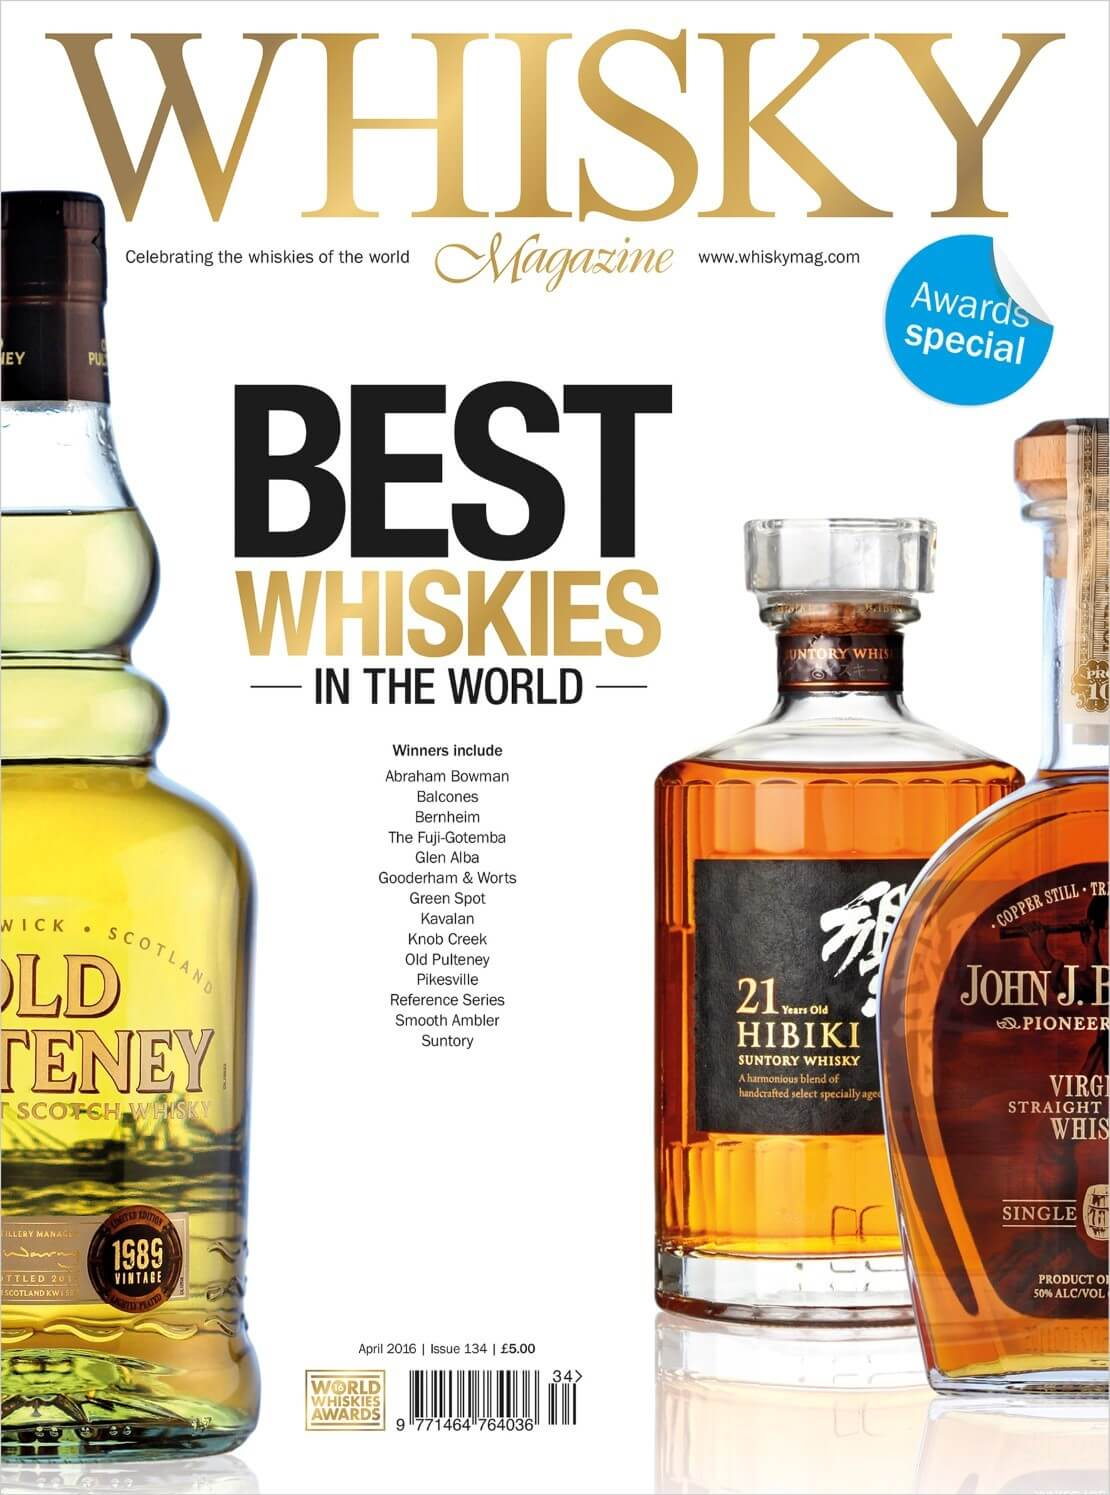 AWARDS SPECIAL The Best Whiskies in the World Icons of Whisky Global Hall of Fame.